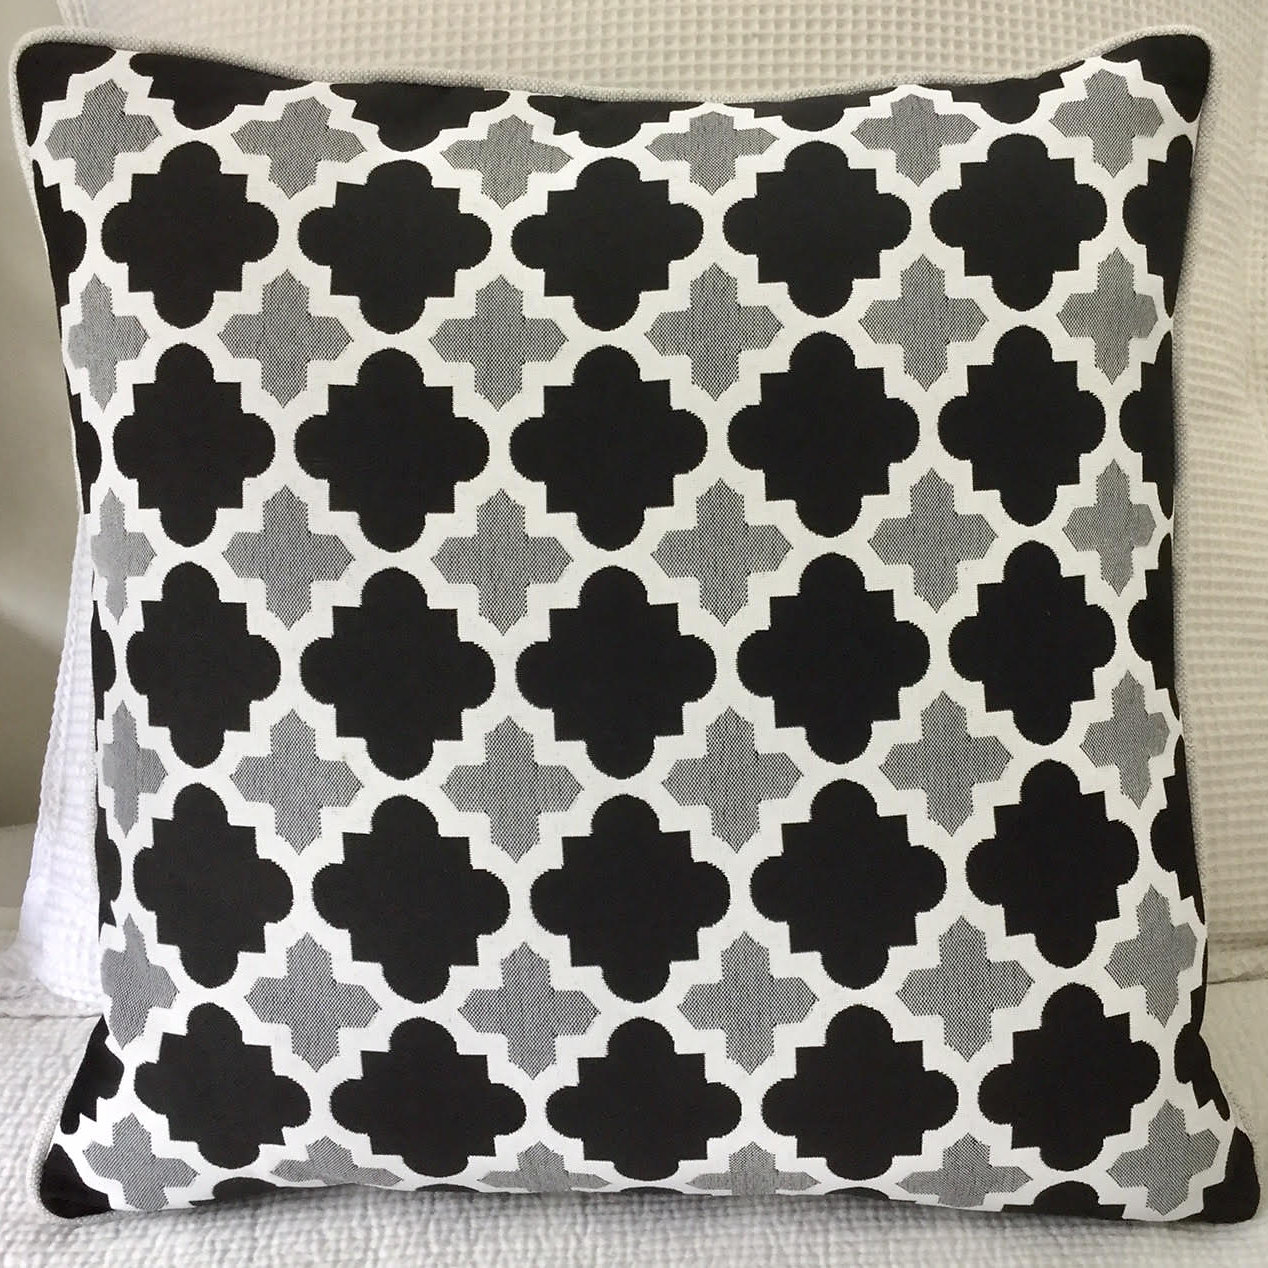 Beautiful Outdoor Cushion In Moroccan Style Outdoor Fabric, Piped In  Contrasting White. Pair Back With Large Outdoor White Cushion 50 X 50.